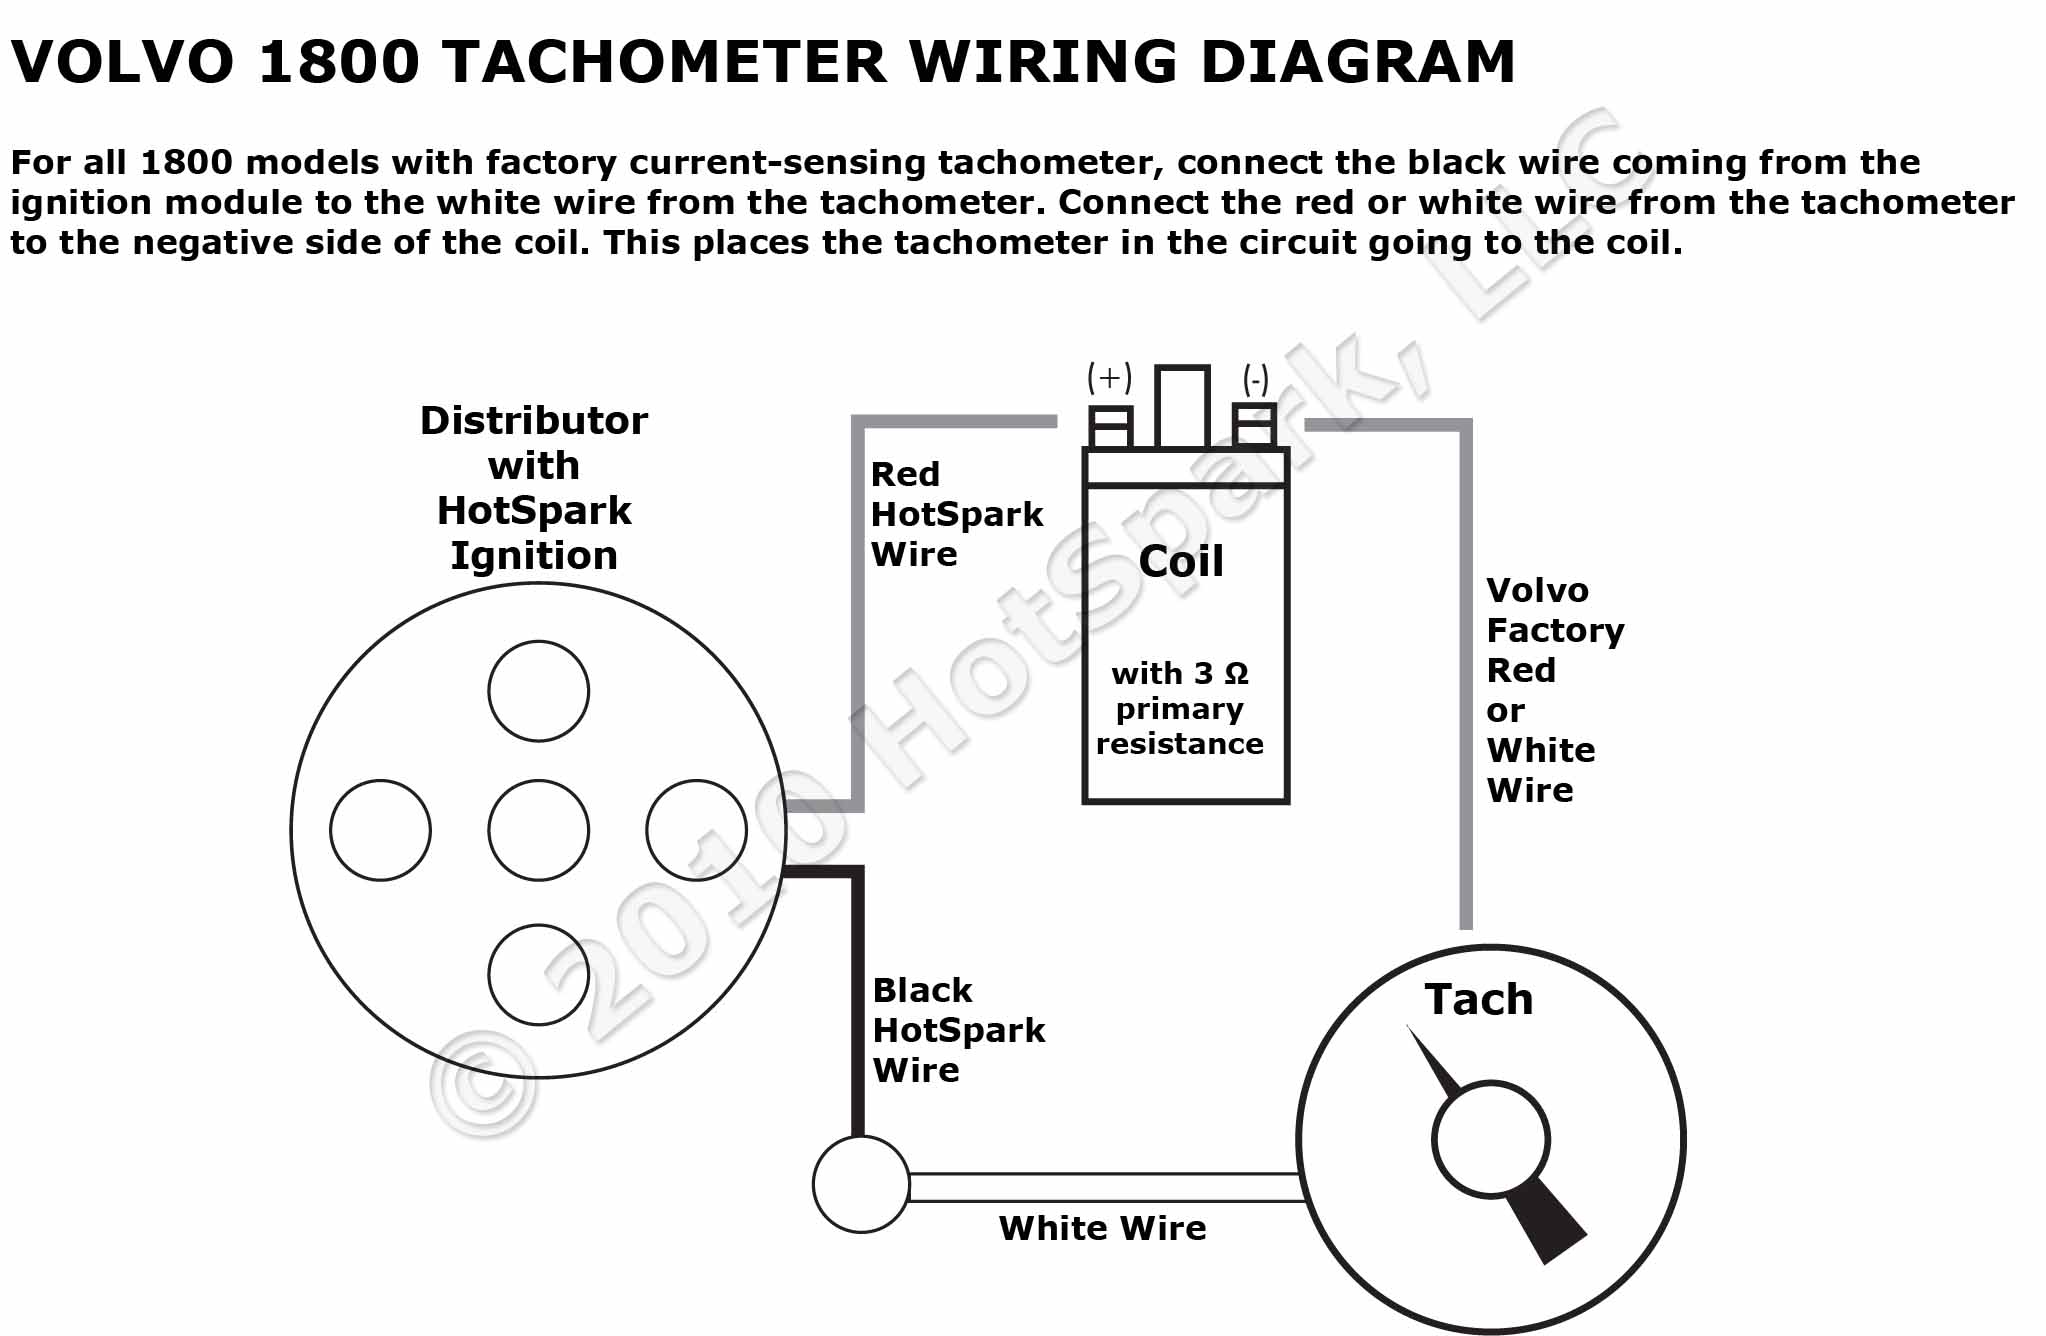 vw vdo tach wiring diagram ob 4488  tach diagram  ob 4488  tach diagram